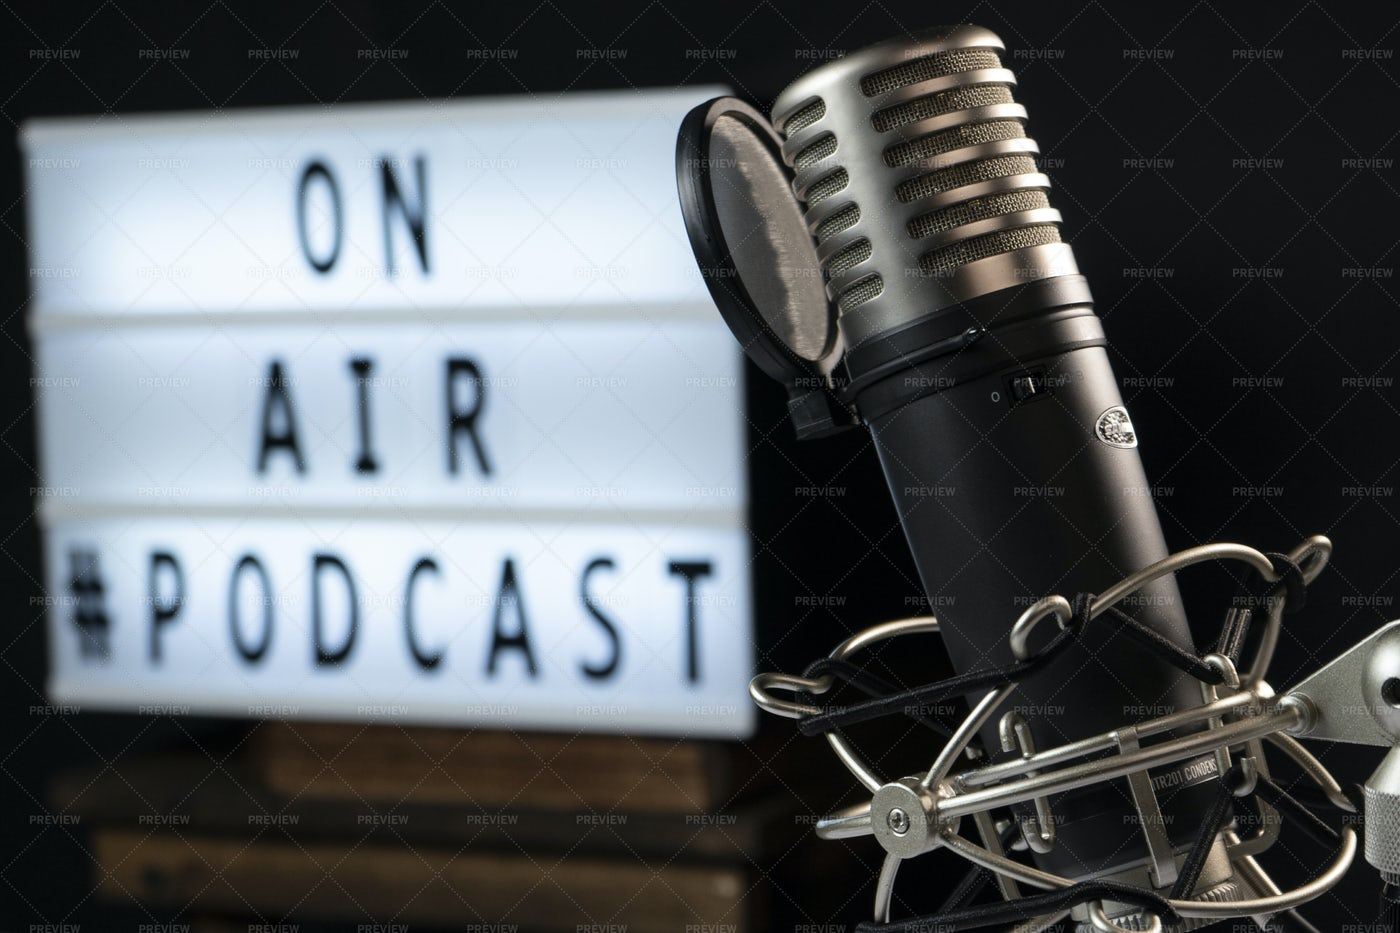 Podcast Setting Workplace: Stock Photos